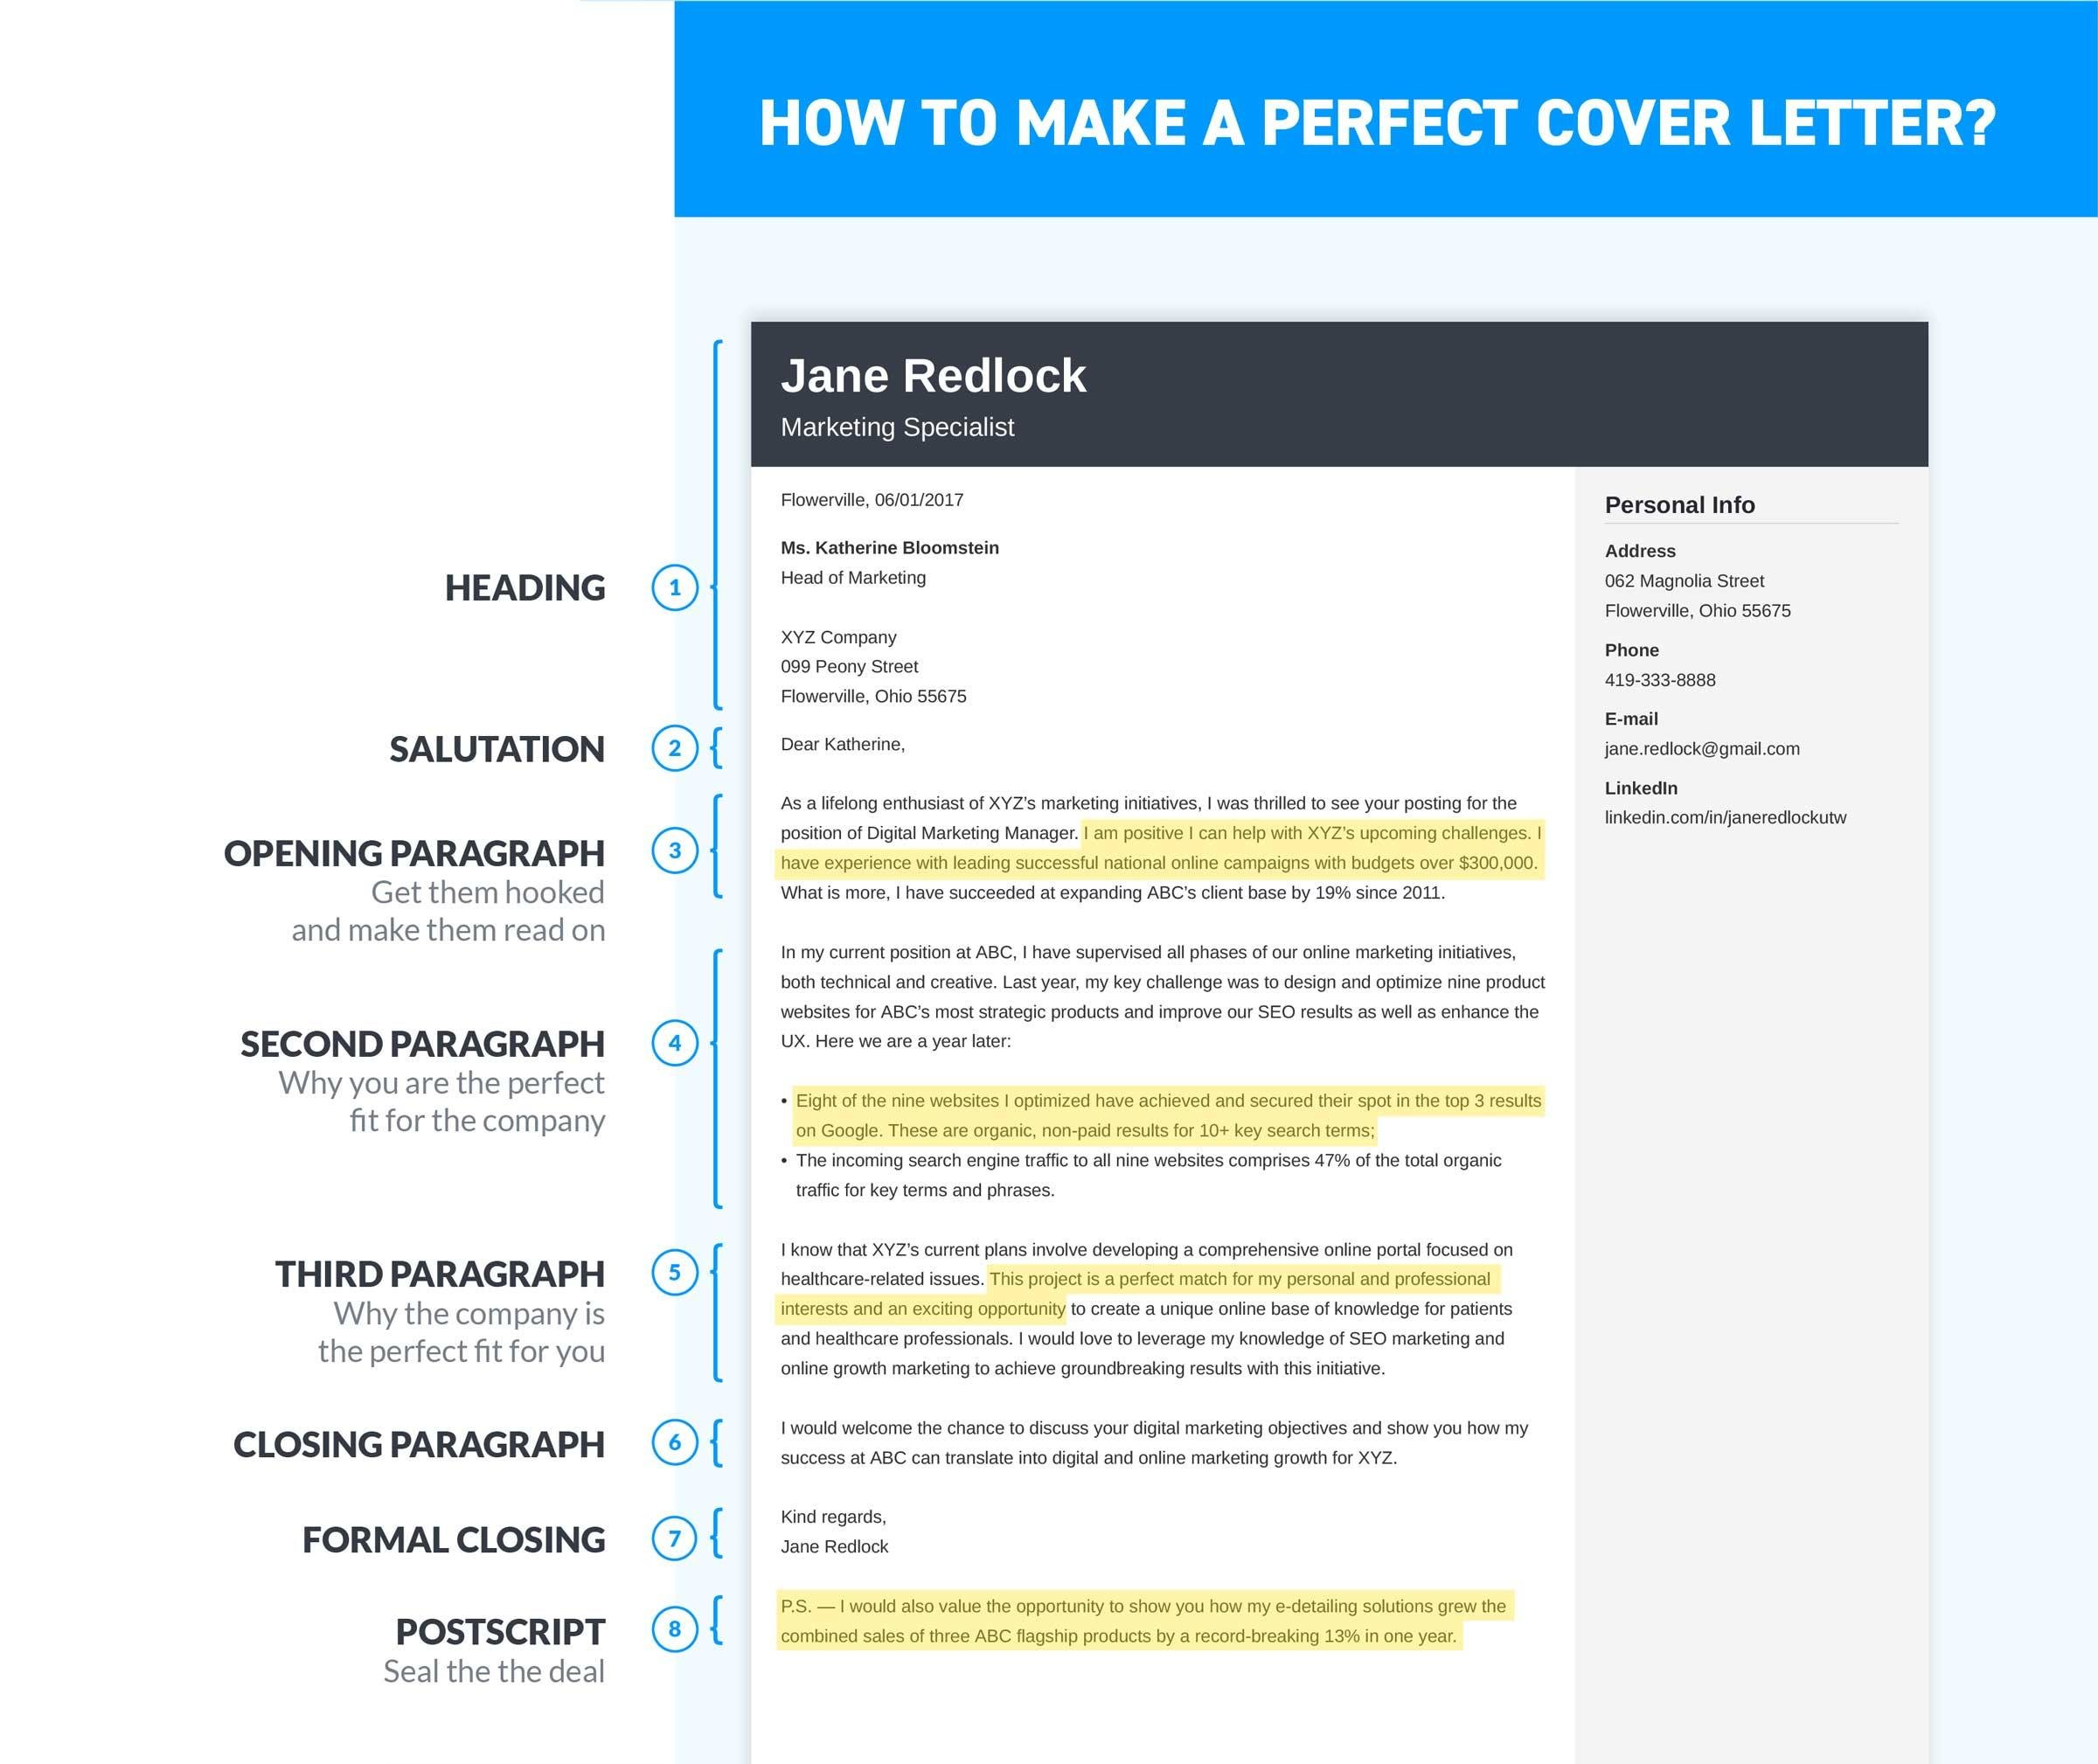 How to write a cover letter in 8 simple steps 12 examples how to make a perfect cover letter infographic m4hsunfo